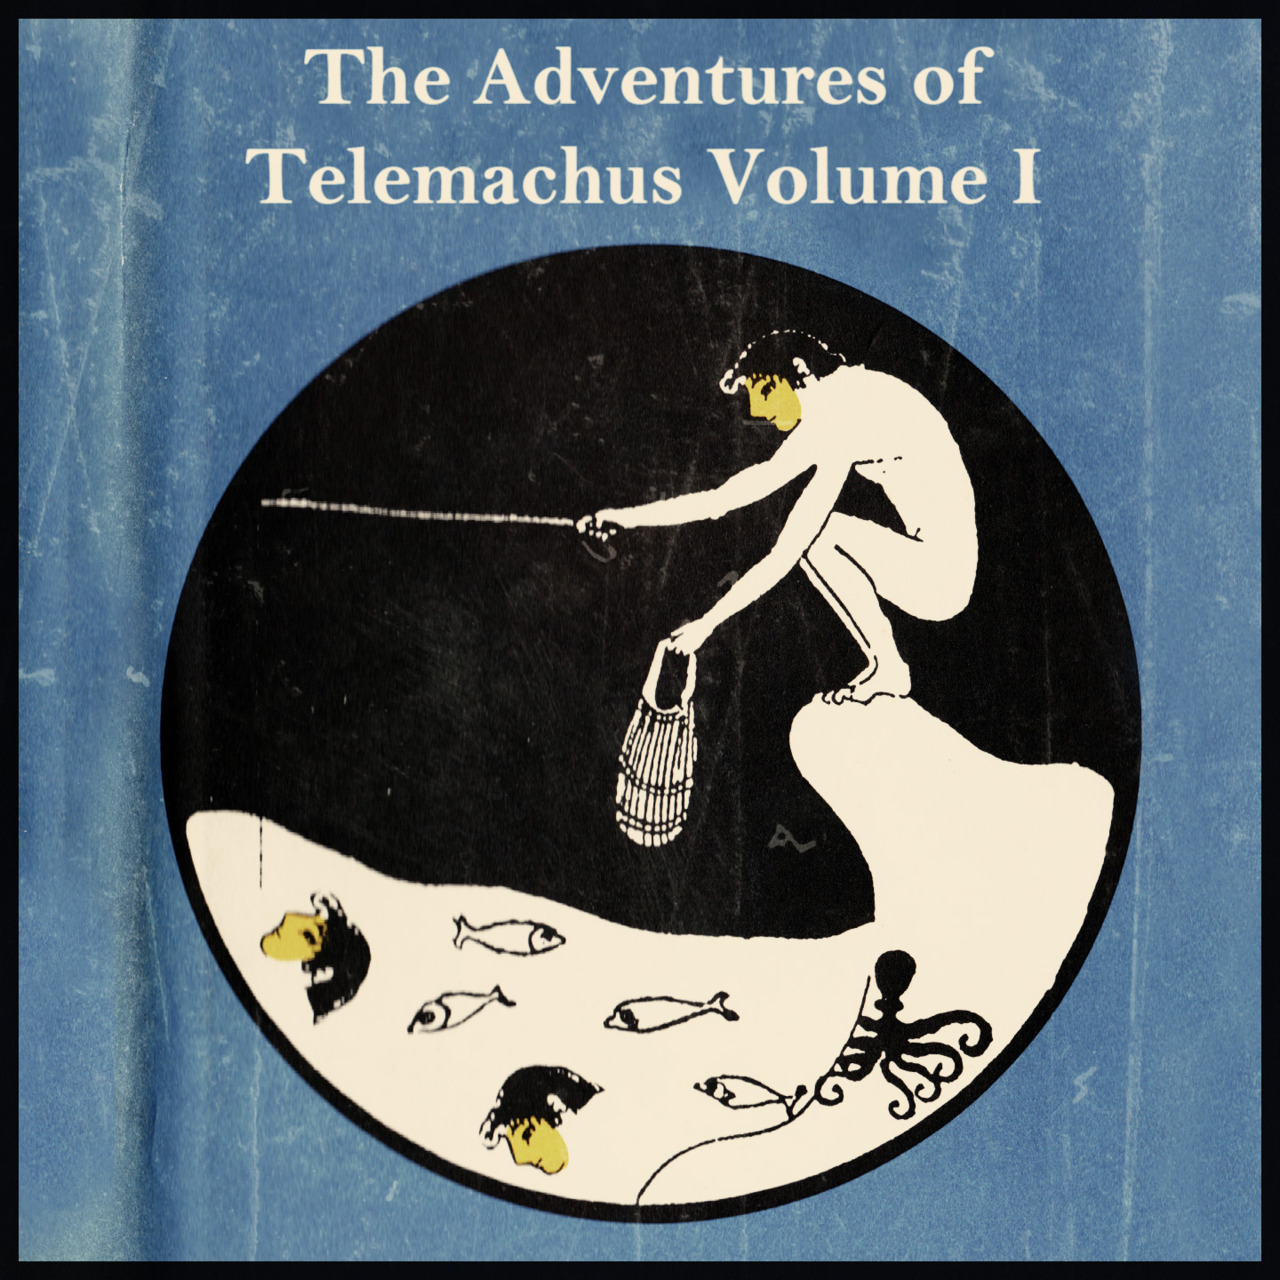 The Adventures of Telemachus Vol.1                                                                         Oddball producer Chemo sent this out the other day,  we recommend taking a listen and look forward to future volumes:     Free Mixtape Download…    In the lead up to the album 'In The Evening' Telemachus will be providing you with a series of mix-compilations of music that he likes and thinks you should like too.   The first edition in this series takes you on a journey from  1960's Ghana  to  90's New York  with a few stops on the way.